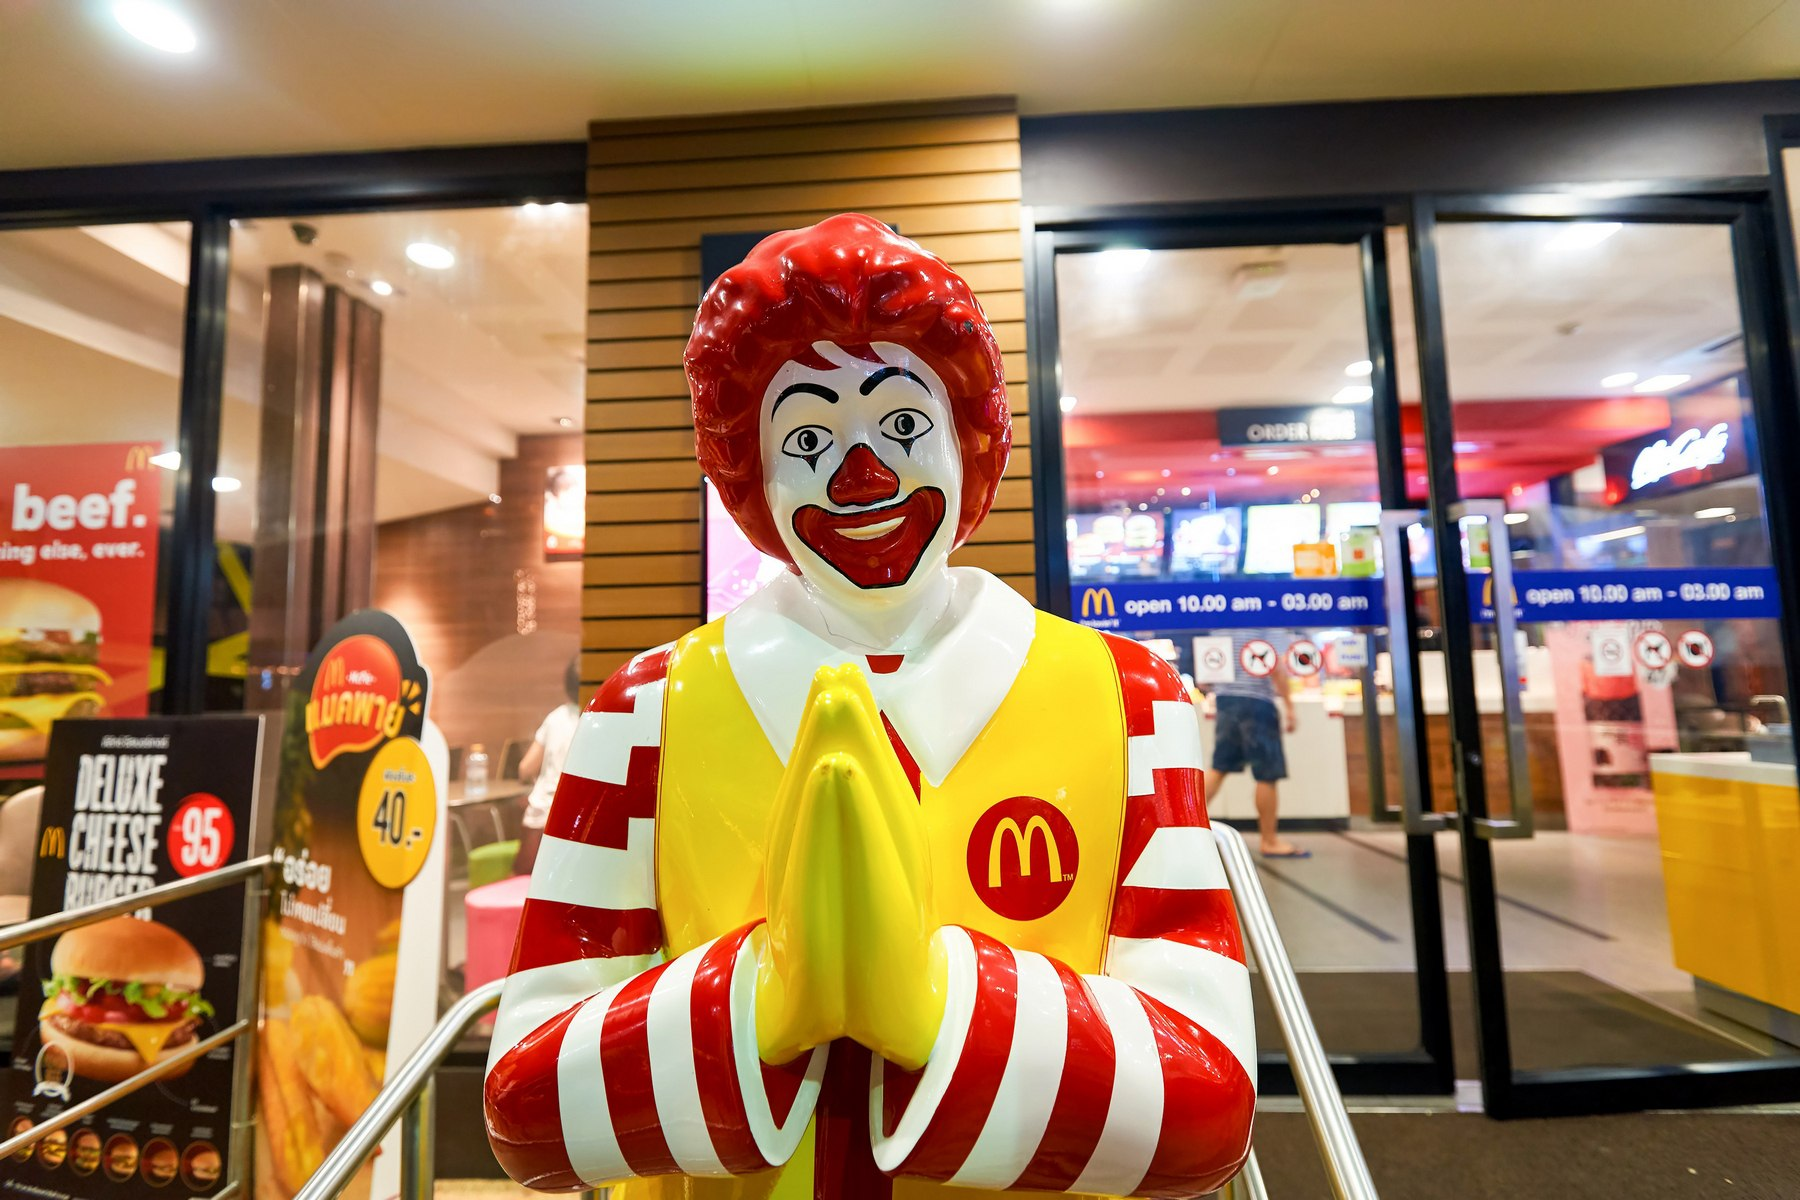 macdonalds vs kfc 1 kfc doesn't try to lure you in with cheap plastic toys actually, they have nothing at all but it's better than crap - twilightkitsune speaking of cheap plastic toys, whenever i go to mcdonalds, the toy always breaks within a minute of playing with it.